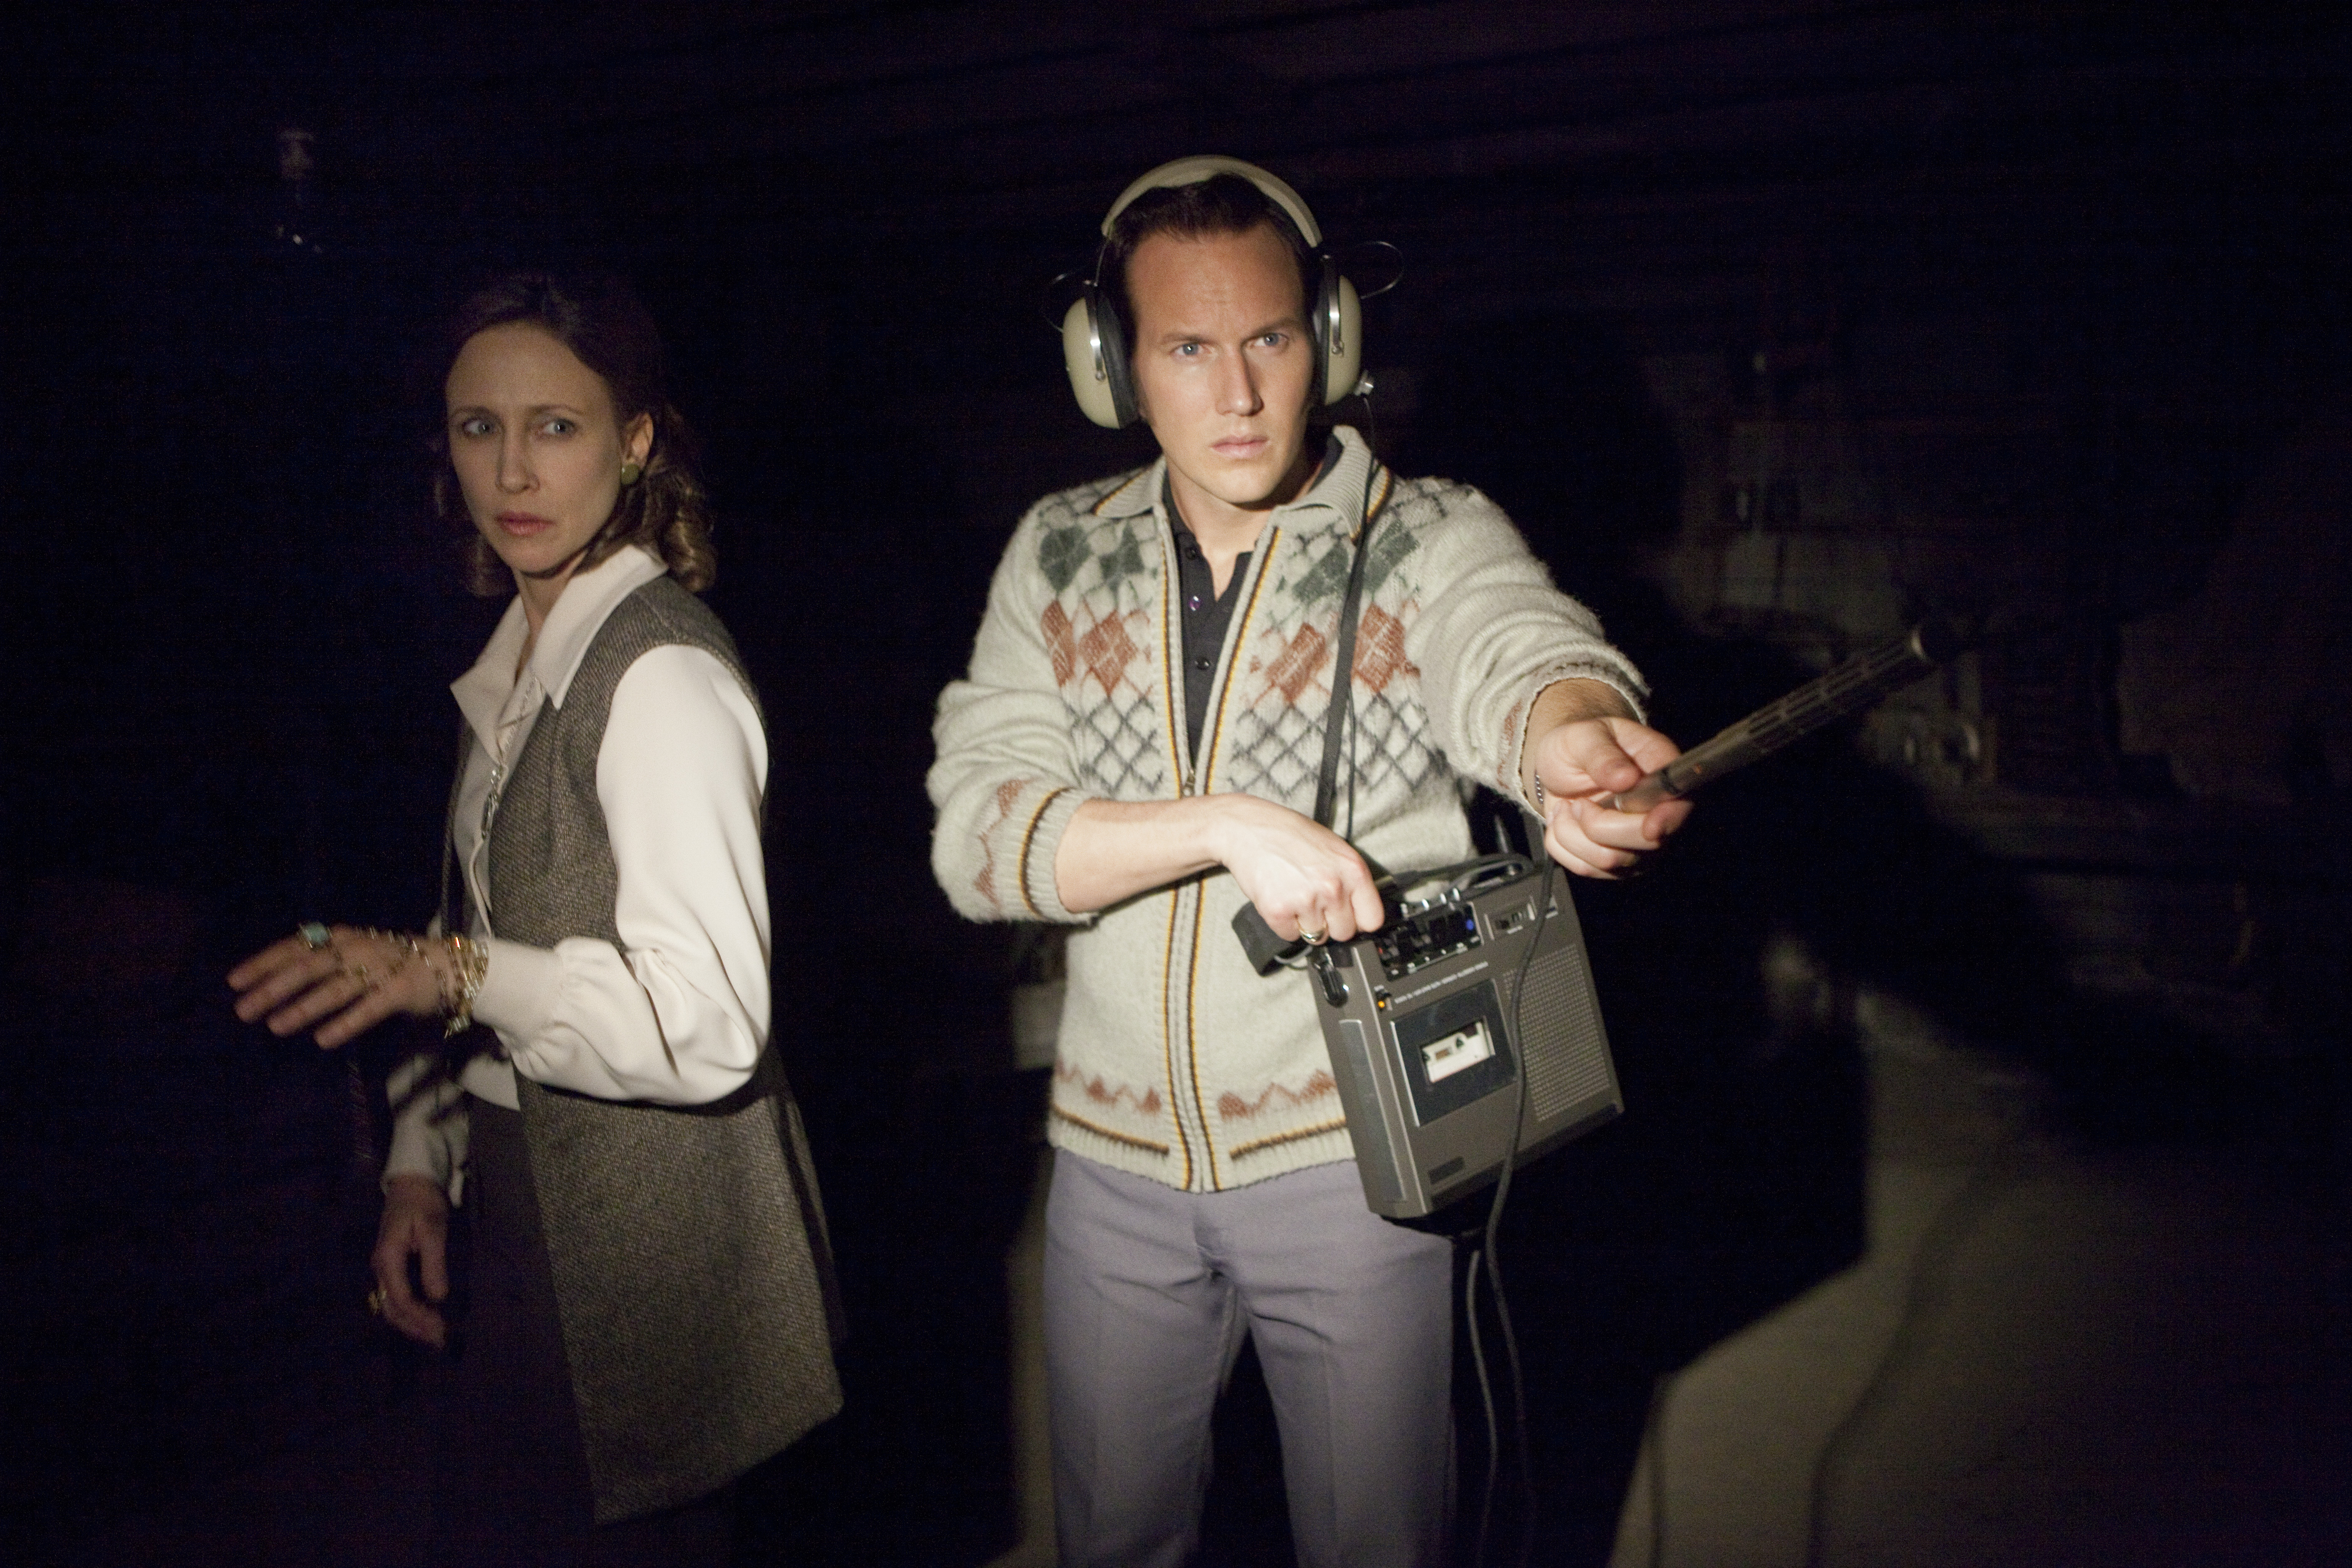 CJD 05667r New Stills From The Conjuring Released